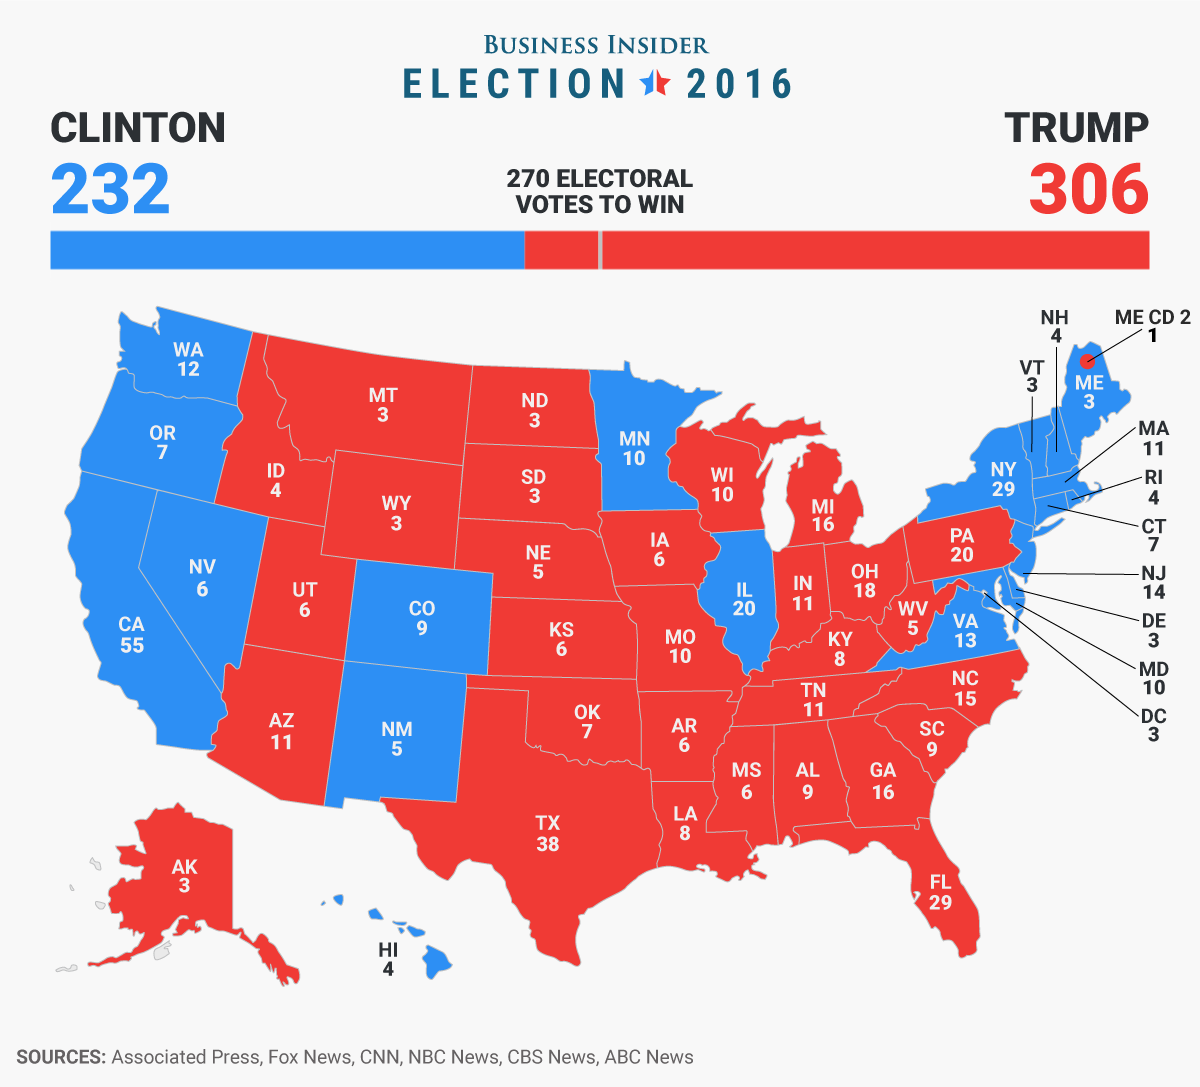 Electoral Votes By State Map 2016 Political Participation: How do we select and elect a president